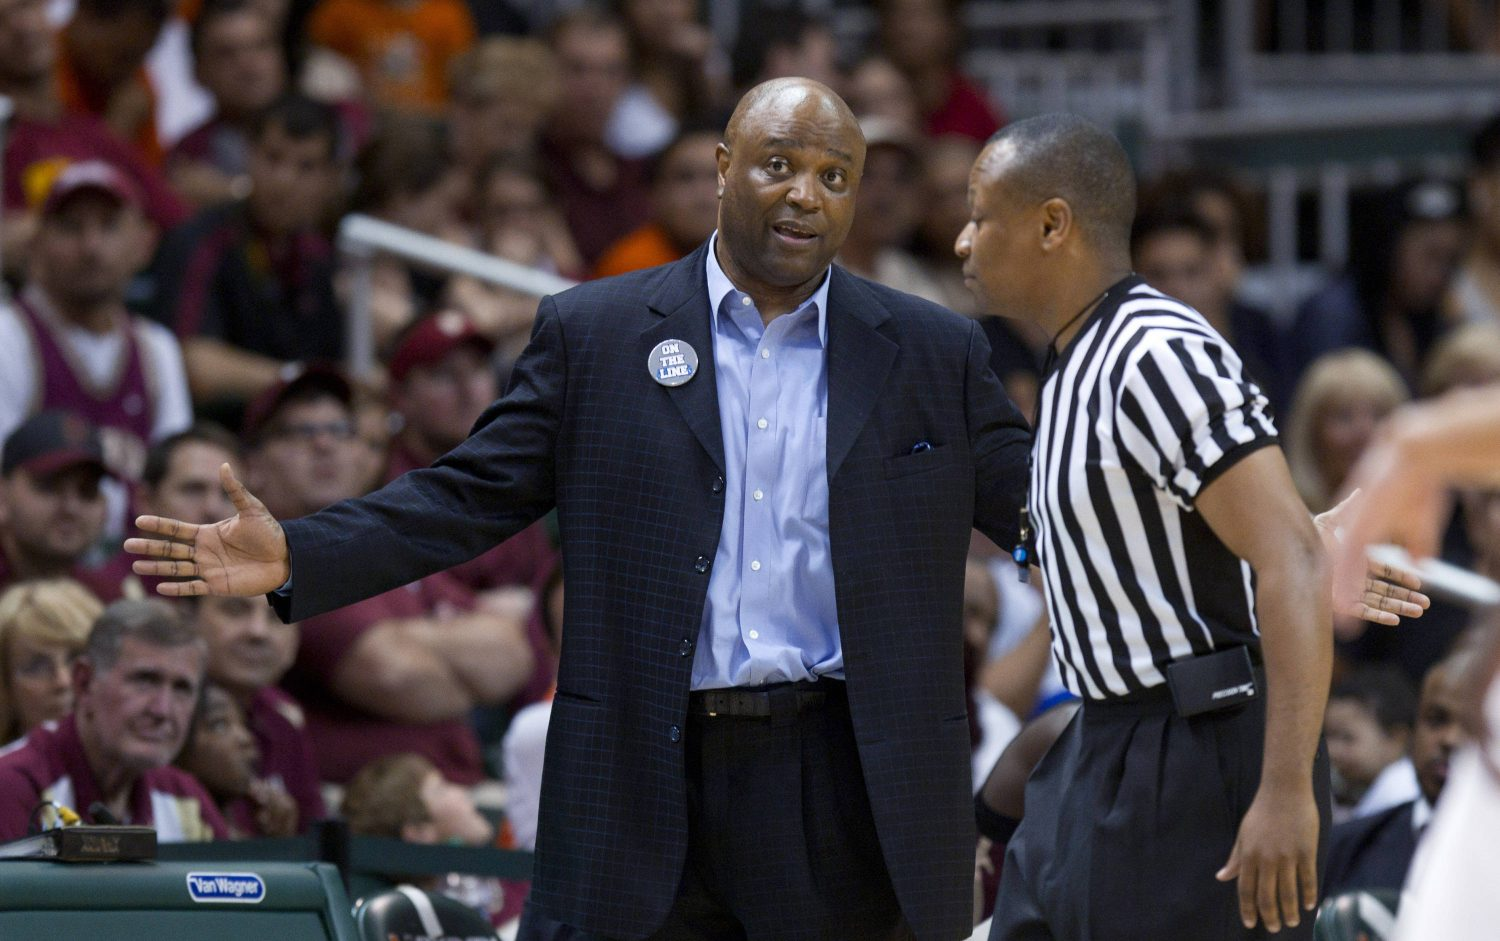 Florida State coach Leonard Hamilton argues a foul call with an official during the second half of an NCAA college basketball game in Coral Gables, Fla., Sunday, Feb. 26, 2012, against Miami. Miami defeated Florida State 78-62. (AP Photo/J Pat Carter)